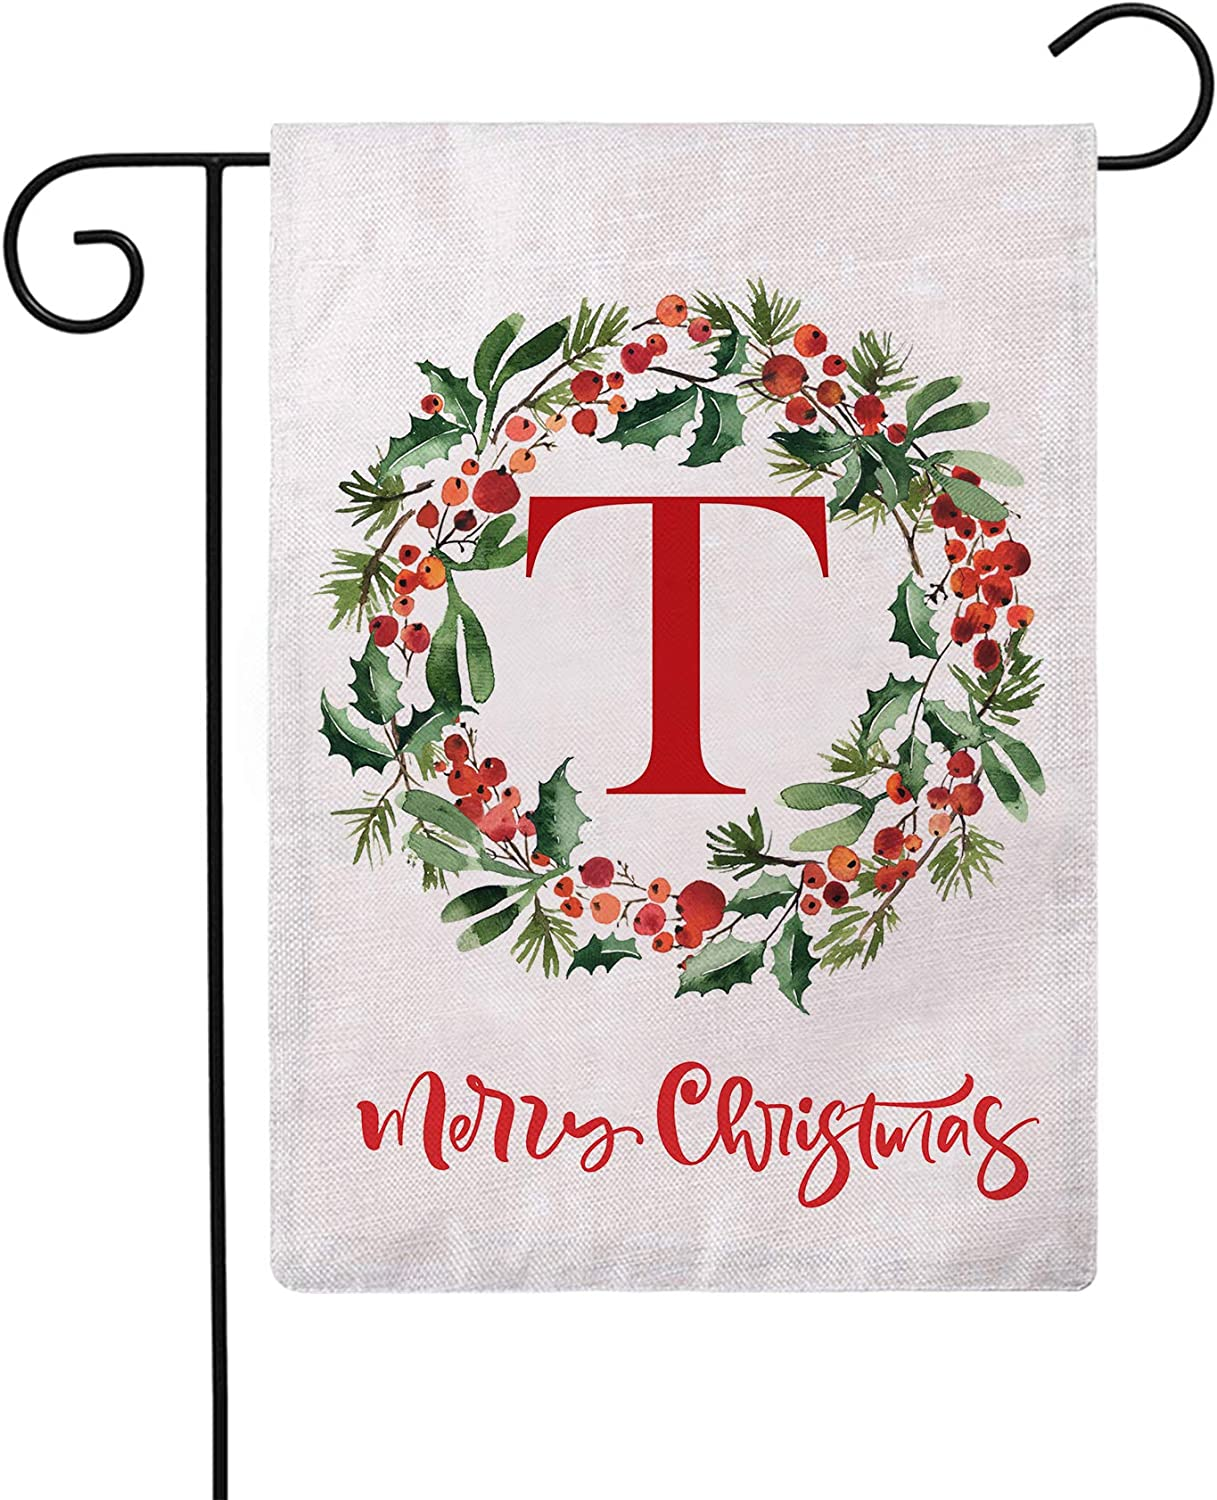 ULOVE LOVE YOURSELF Merry Christmas Wreath Decorative Garden Flags with Monogram Letter T Double Sided Winter Holiday Outdoor Garden Flags 12.5×18 Inch for House Garden Yard Patio Decor (T)